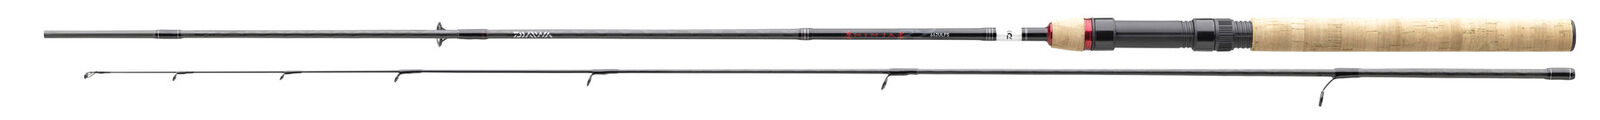 DAIWA NINJA X UL SPIN - Ultra Light Spinnrute 1,80m 2-8g / 1,90m 1-9g